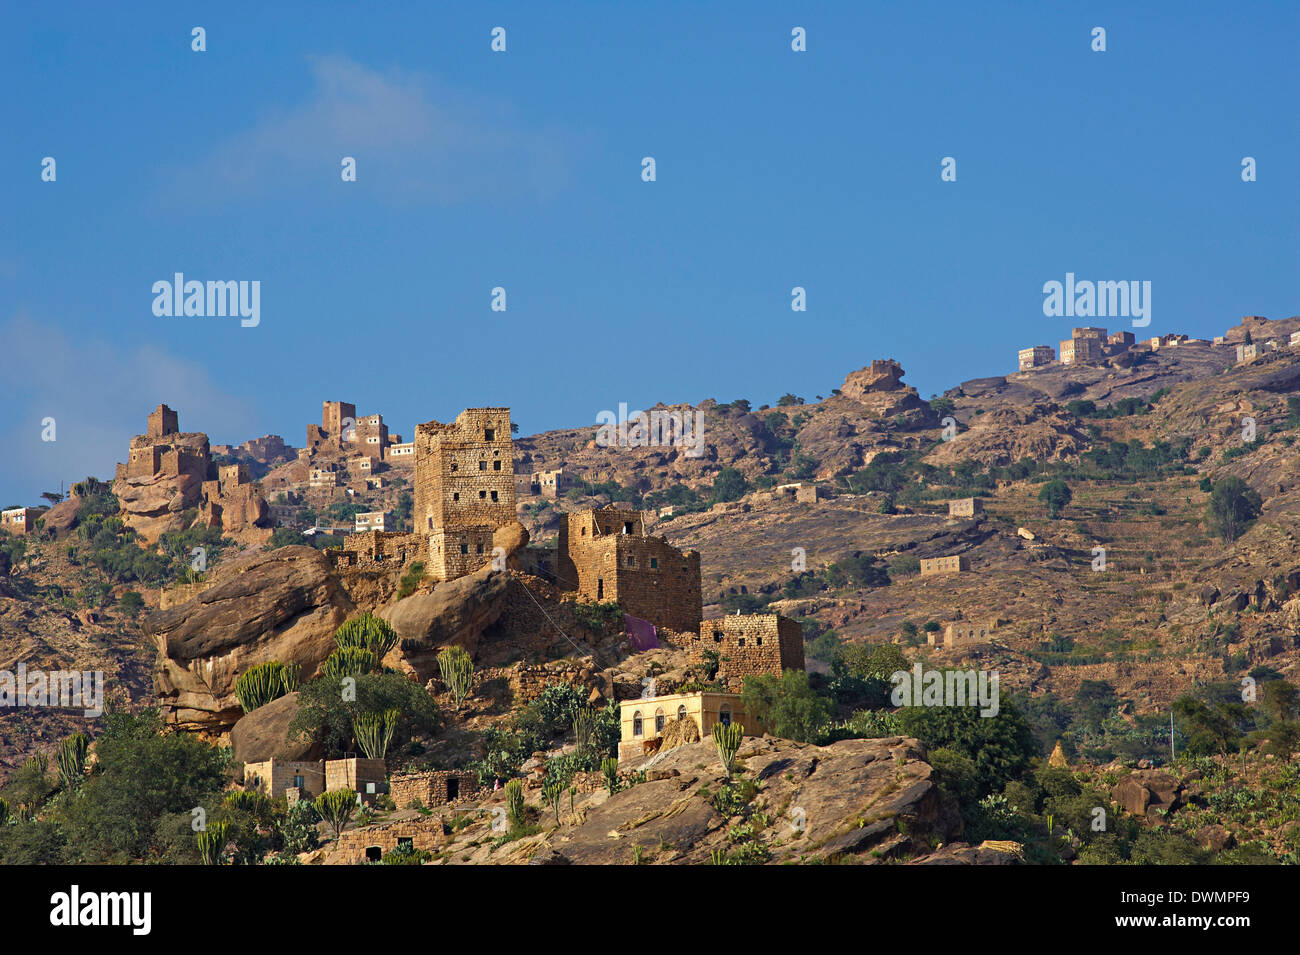 Central Mountains, Yemen, Middle East - Stock Image